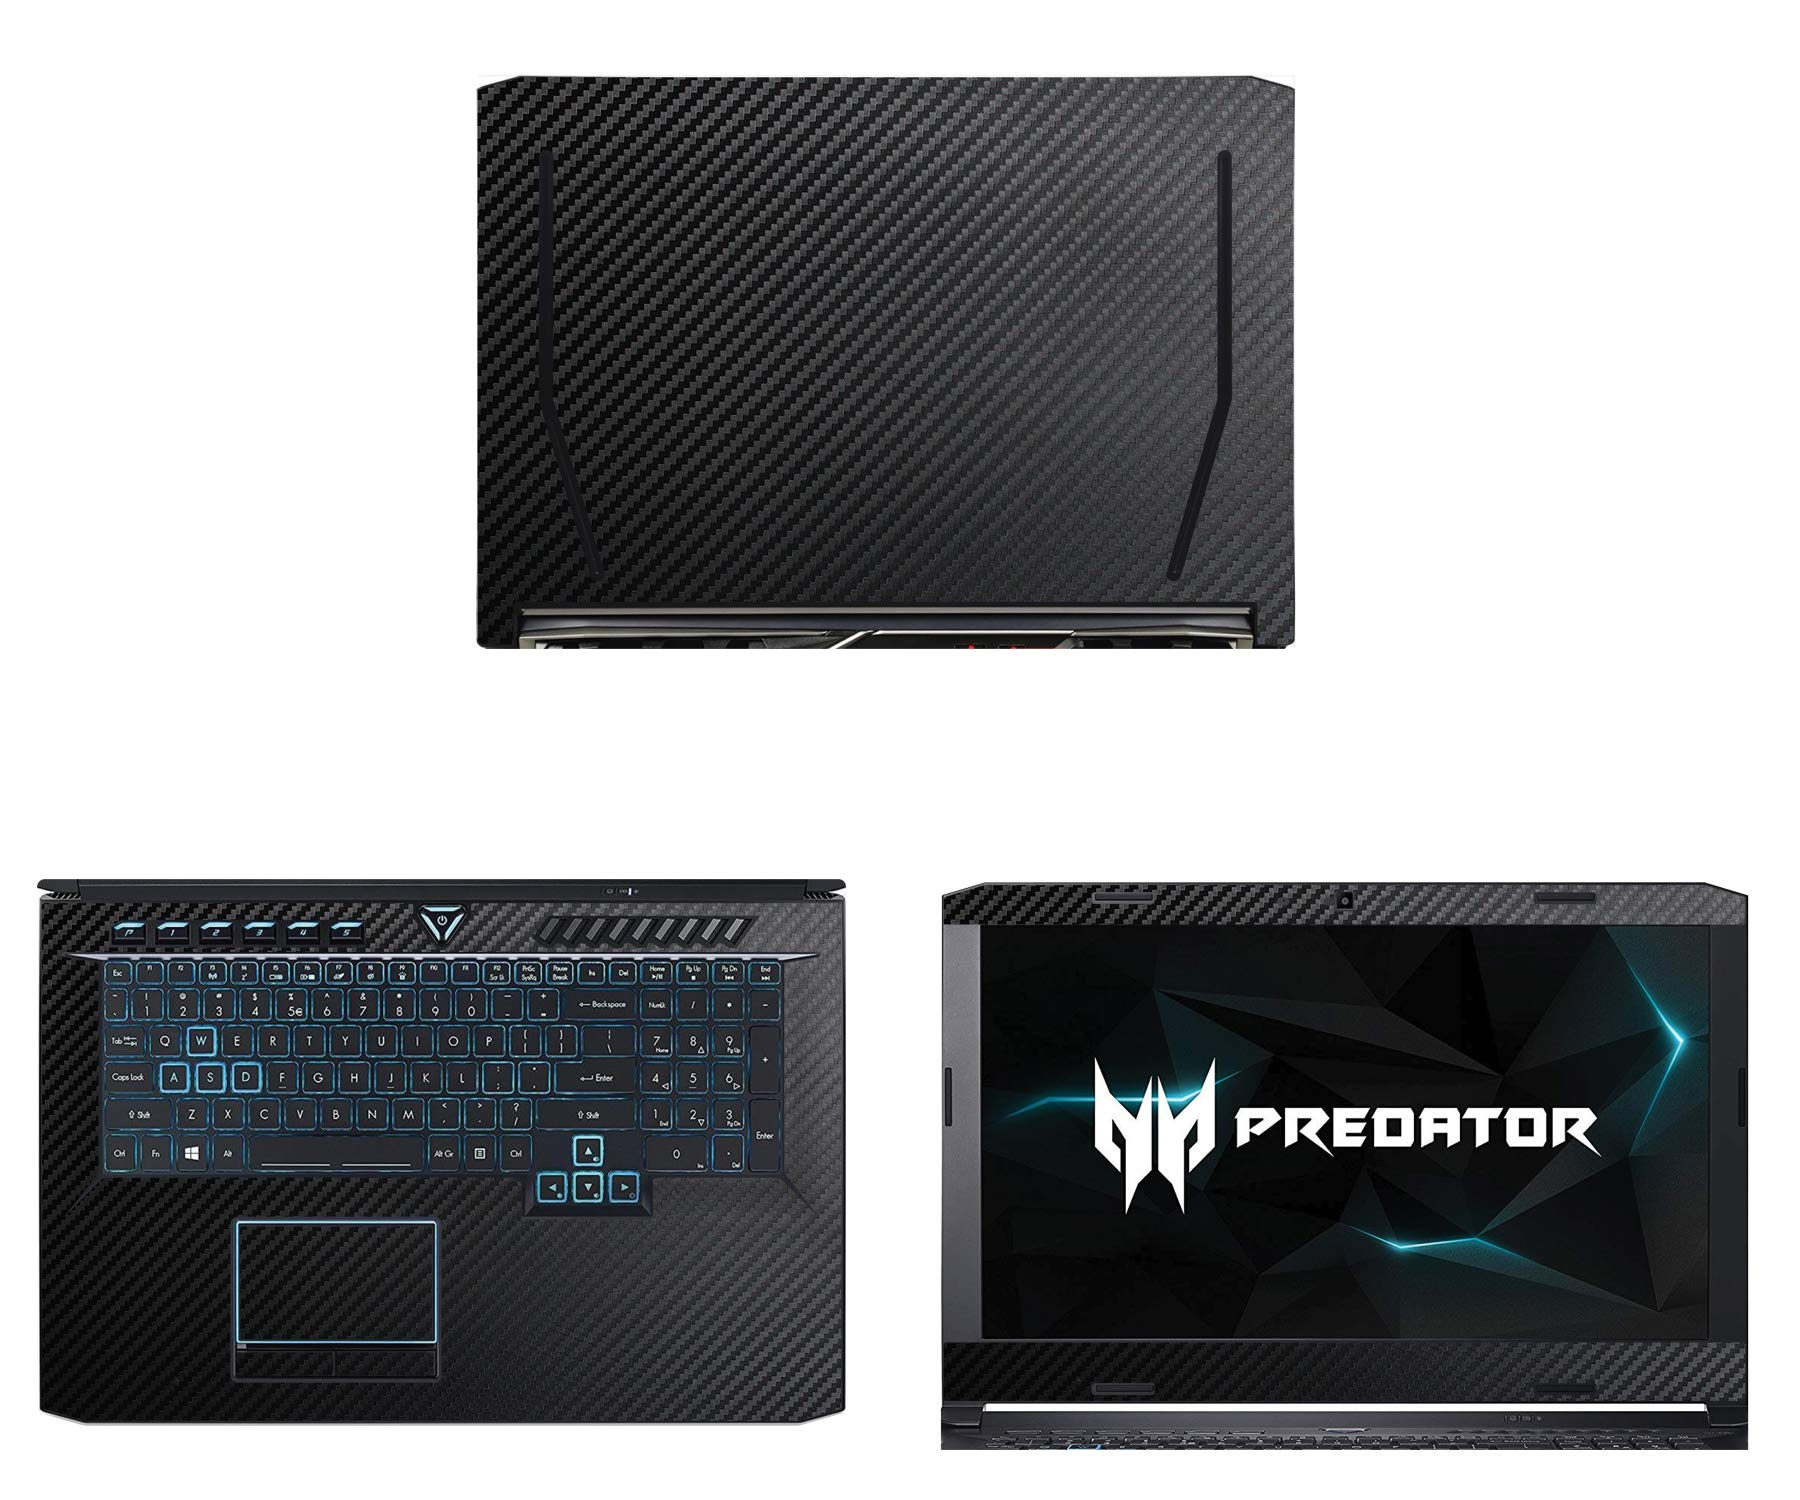 Decalrus - Protective Decal for Acer Predator Helios 500 (17.3'' Screen) Laptop Black Carbon Fiber Skin case Cover wrap CFacerPredatorHelios500_17Black by decalrus (Image #1)